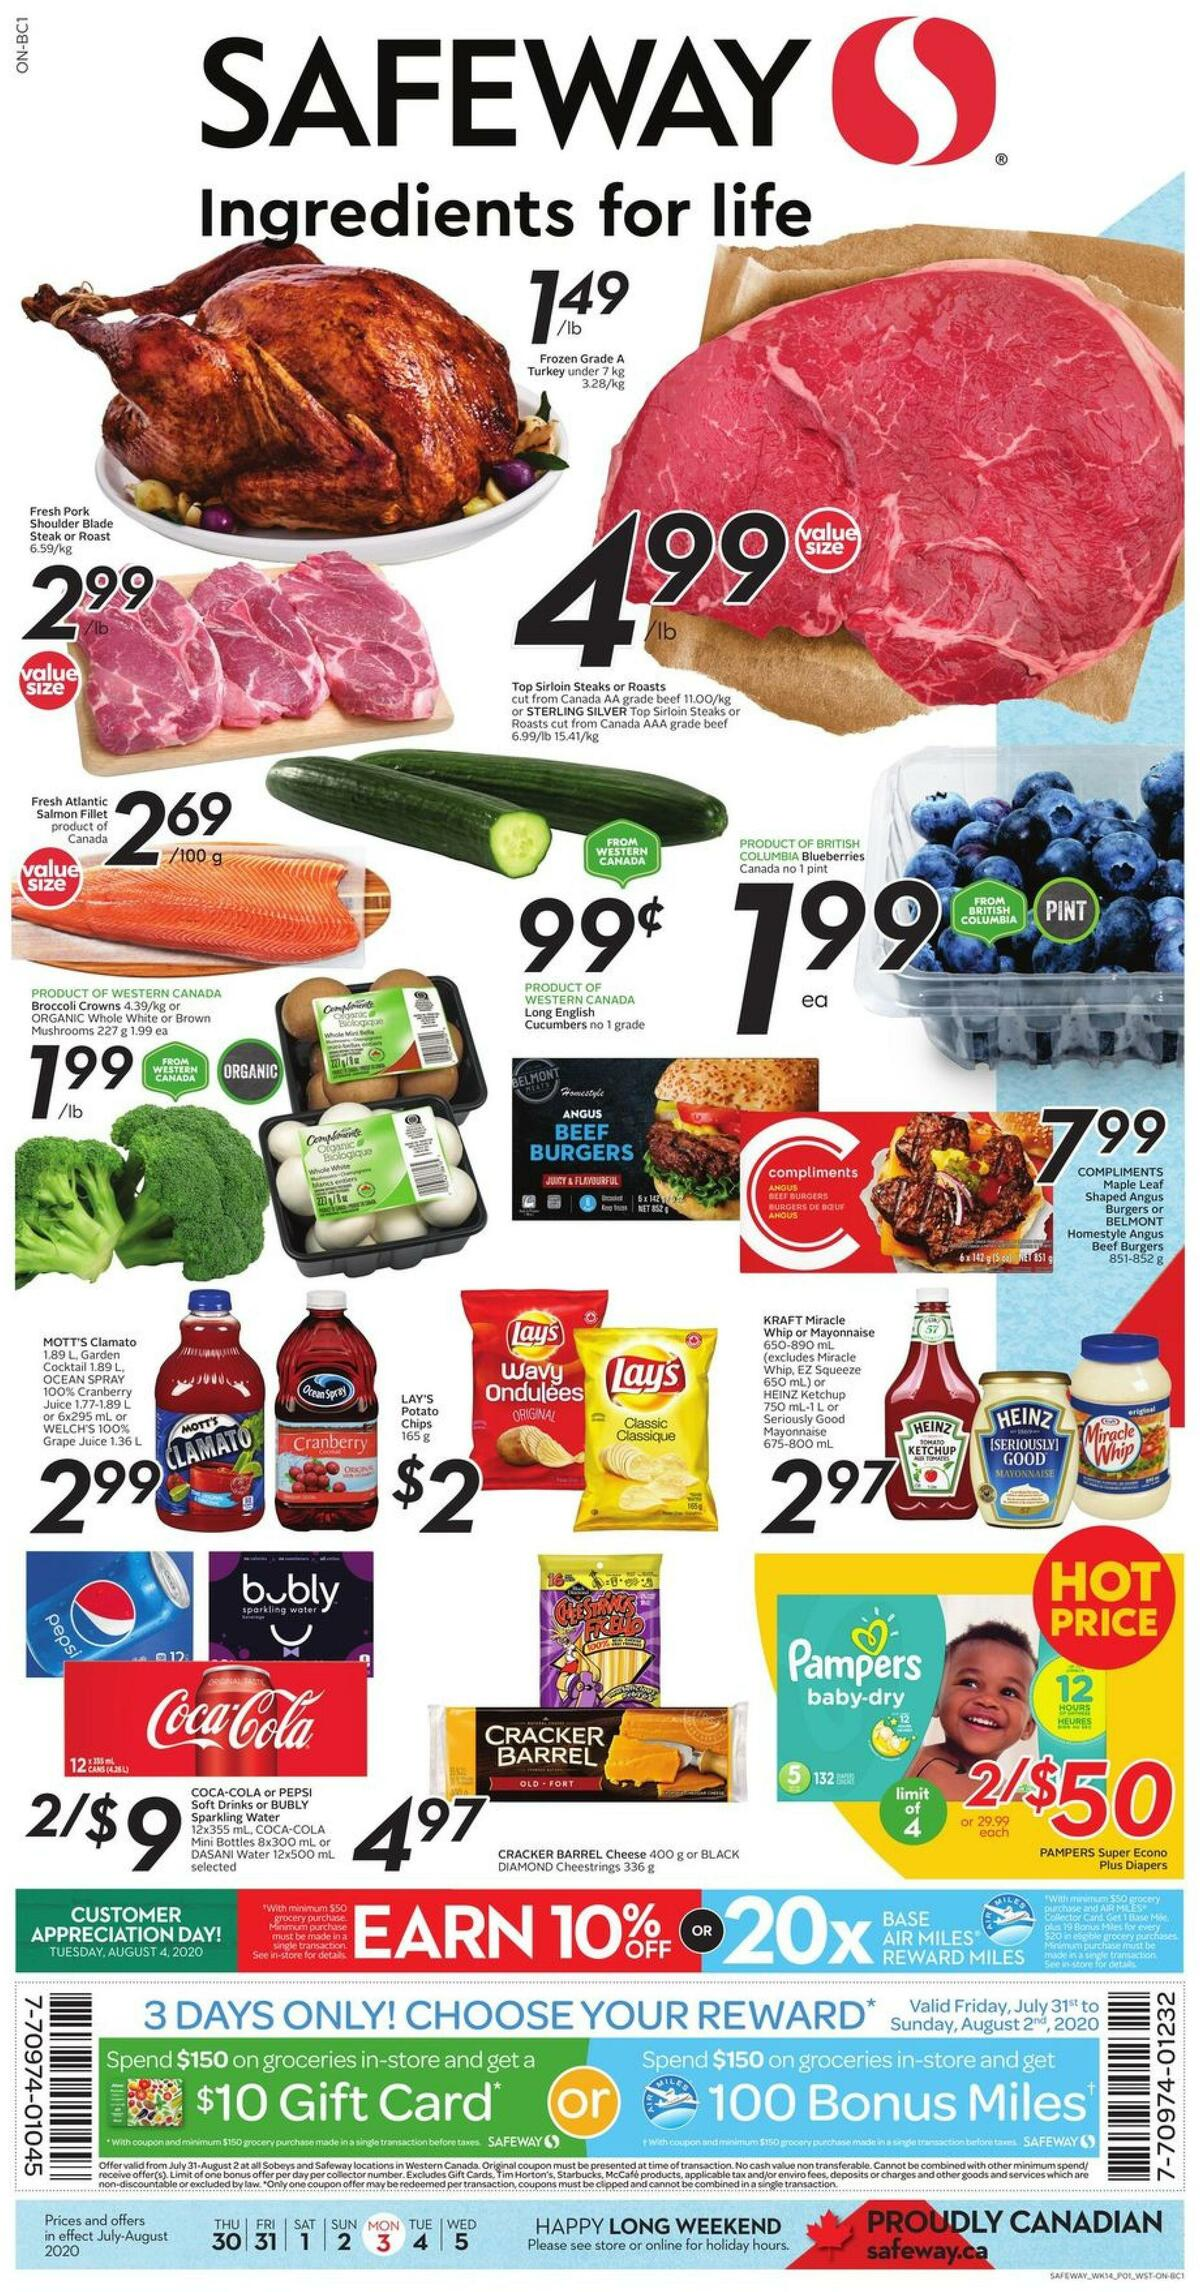 Safeway Flyer from July 30